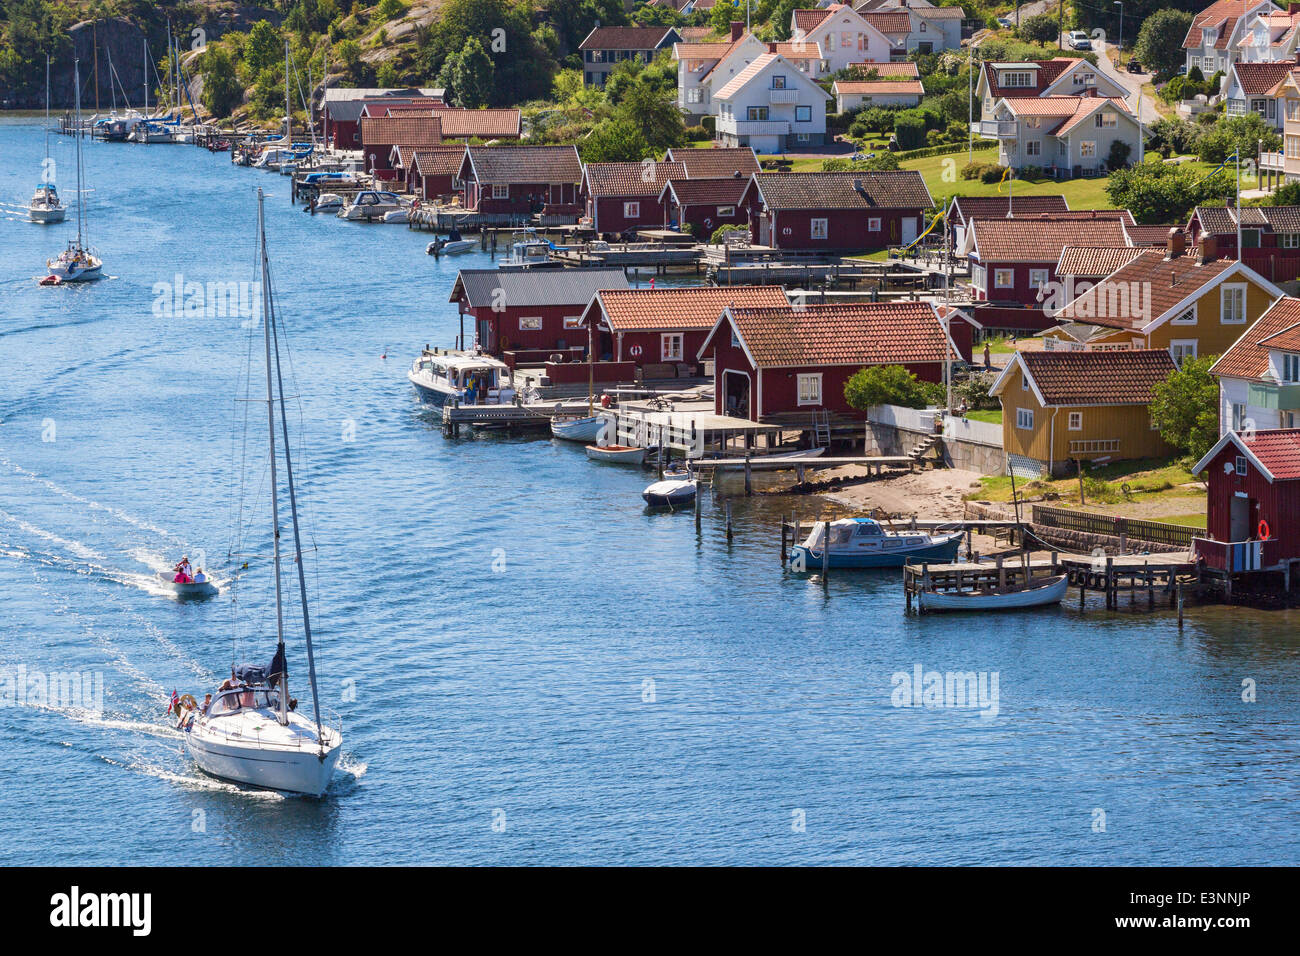 View of of an old fishing village Hamburgersund on the Swedish west coast - Stock Image